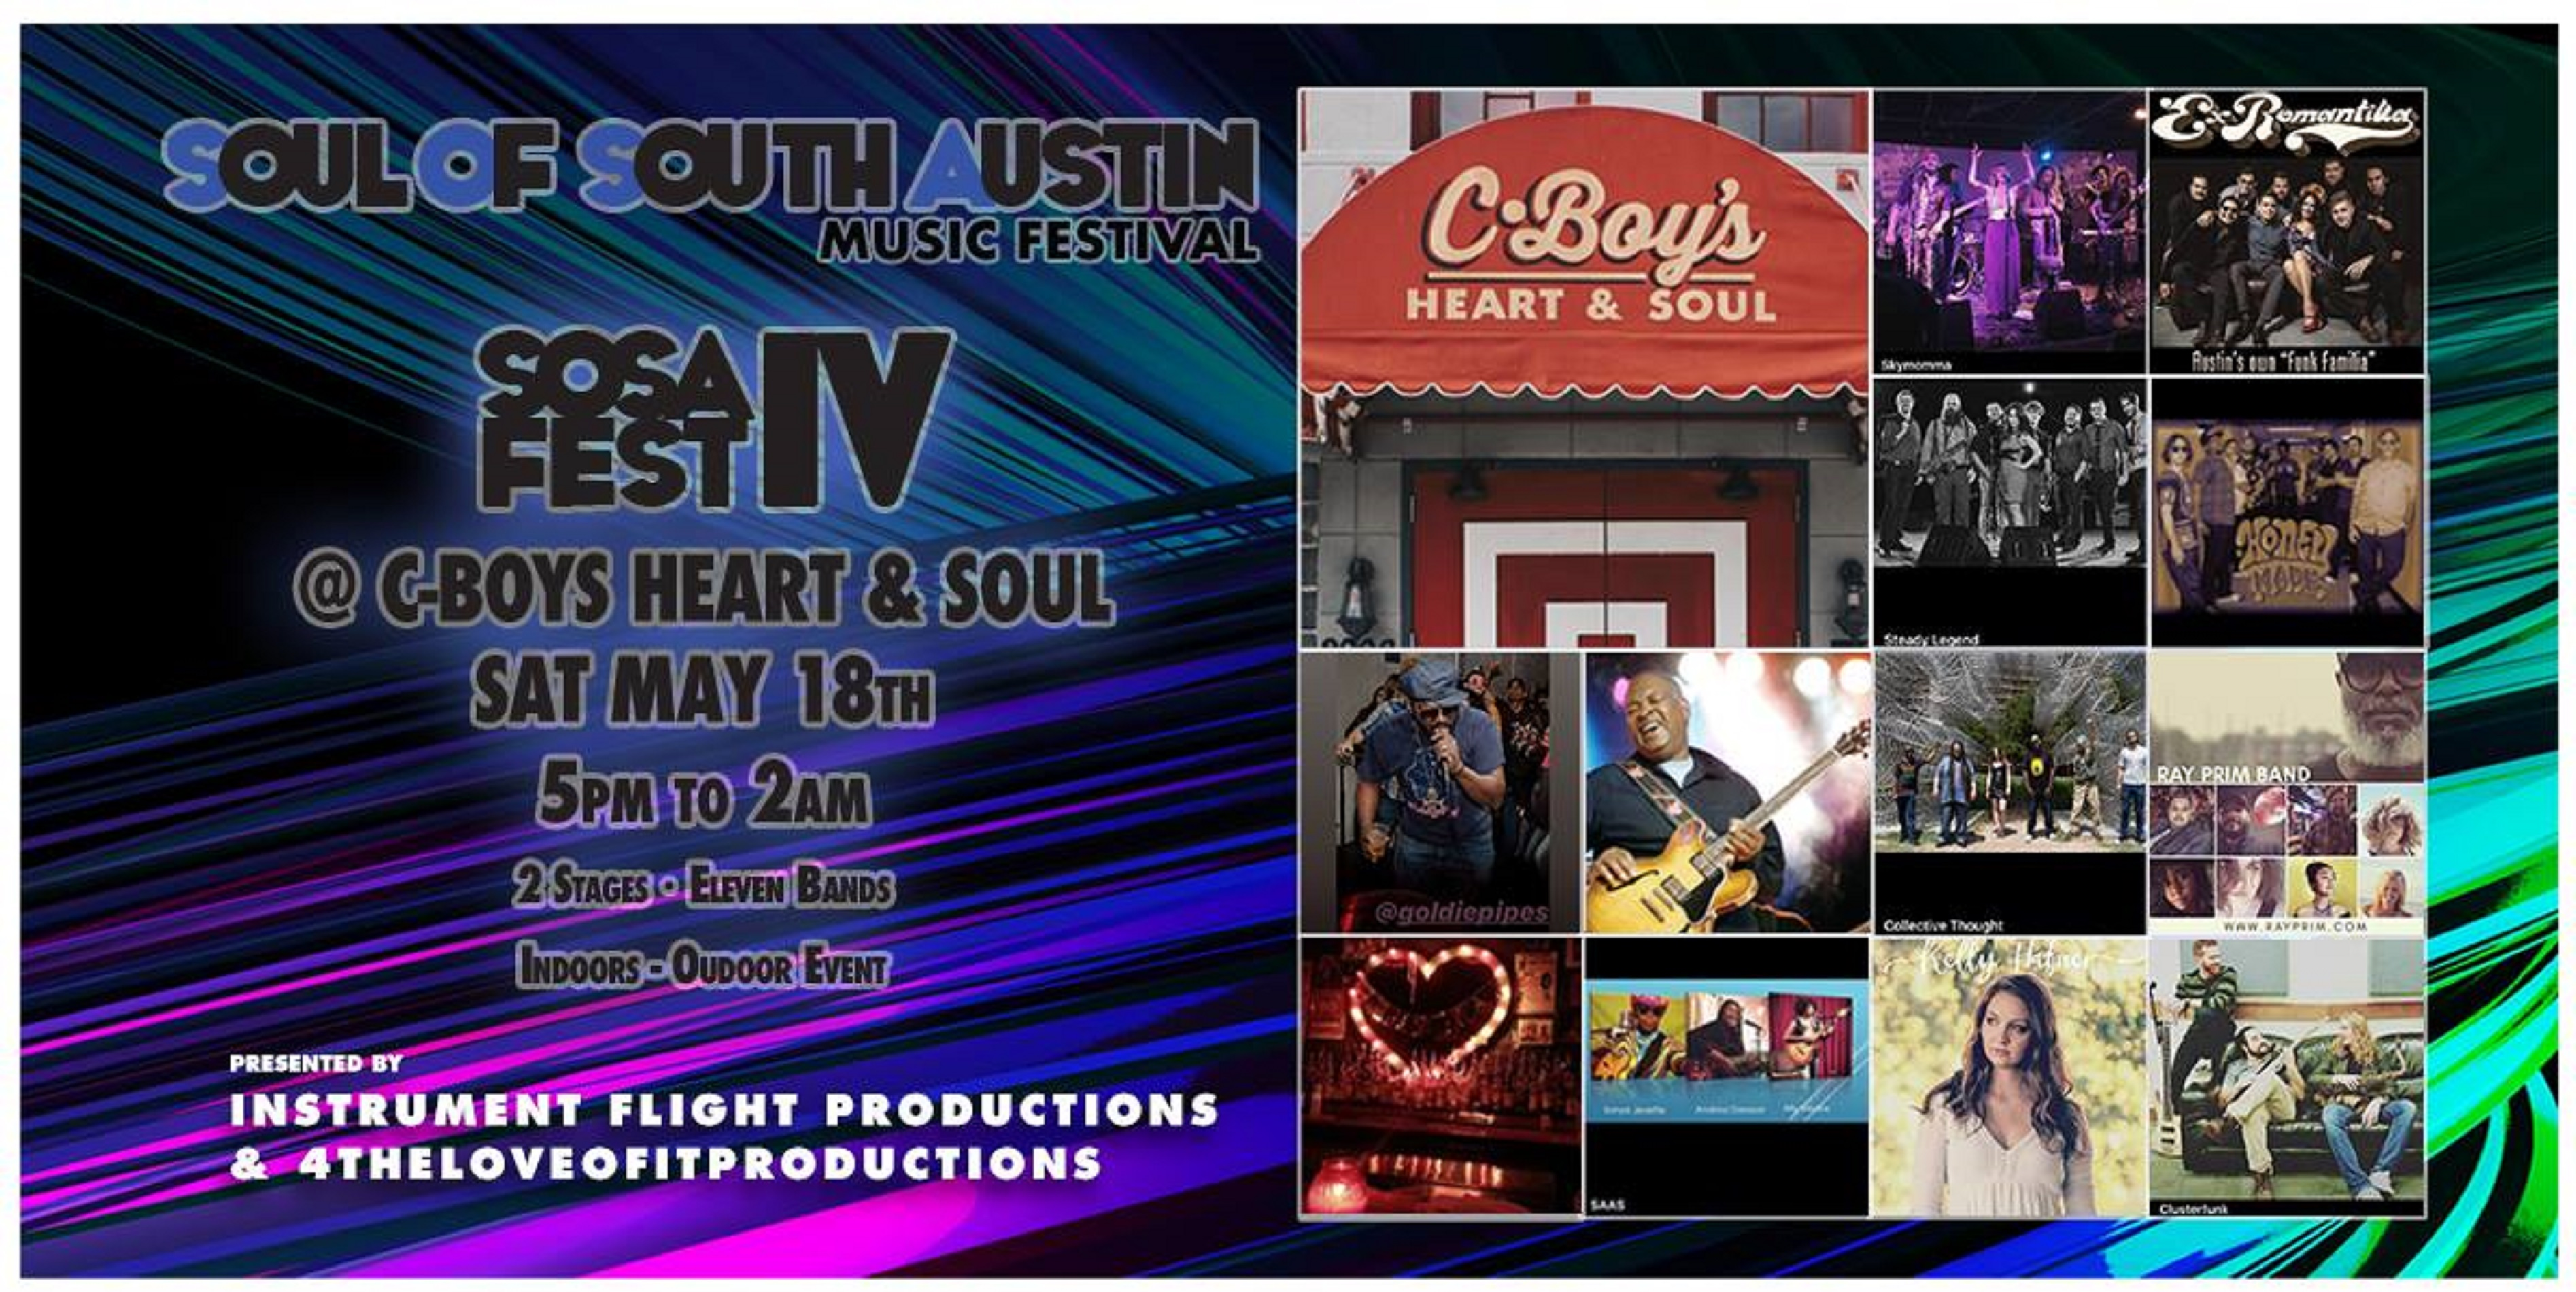 Soul of South Austin Festival IV Announces 2019 Lineup